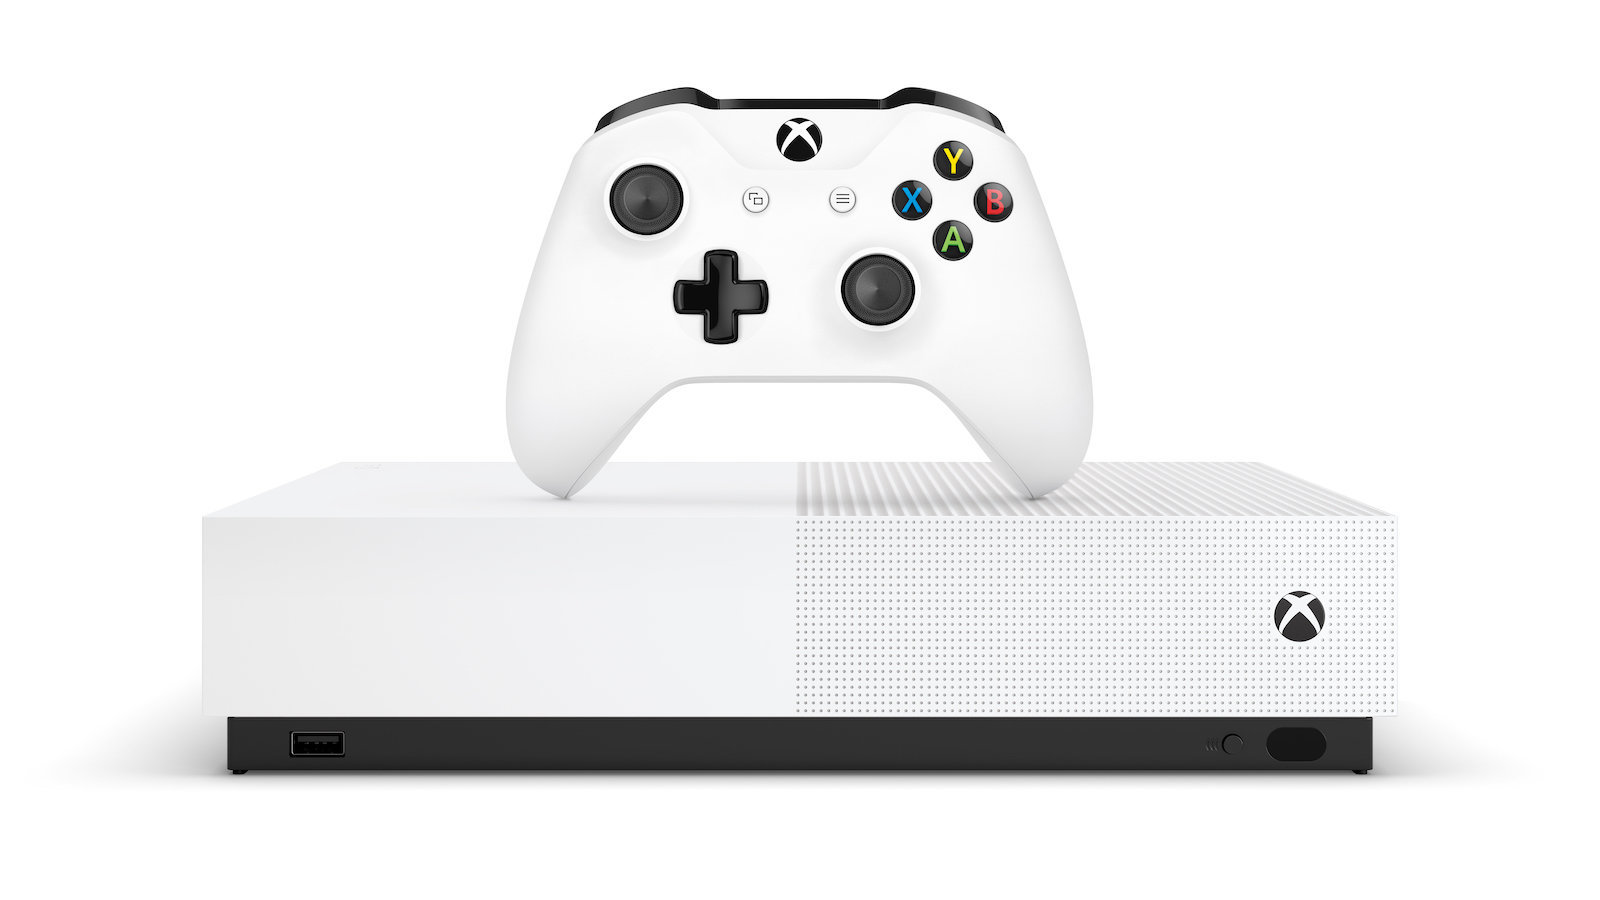 Cost of Xbox One S